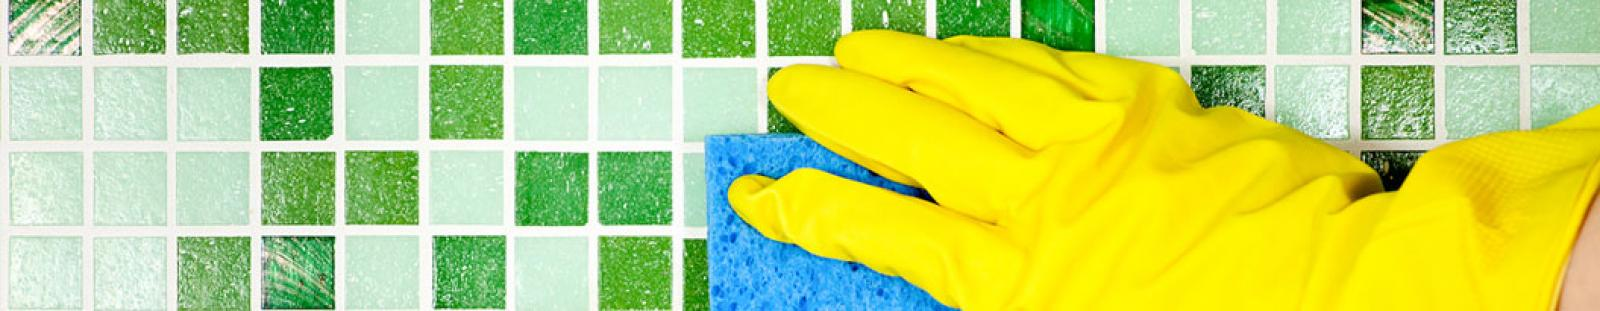 image of custodian scrubbing bathroom tiles